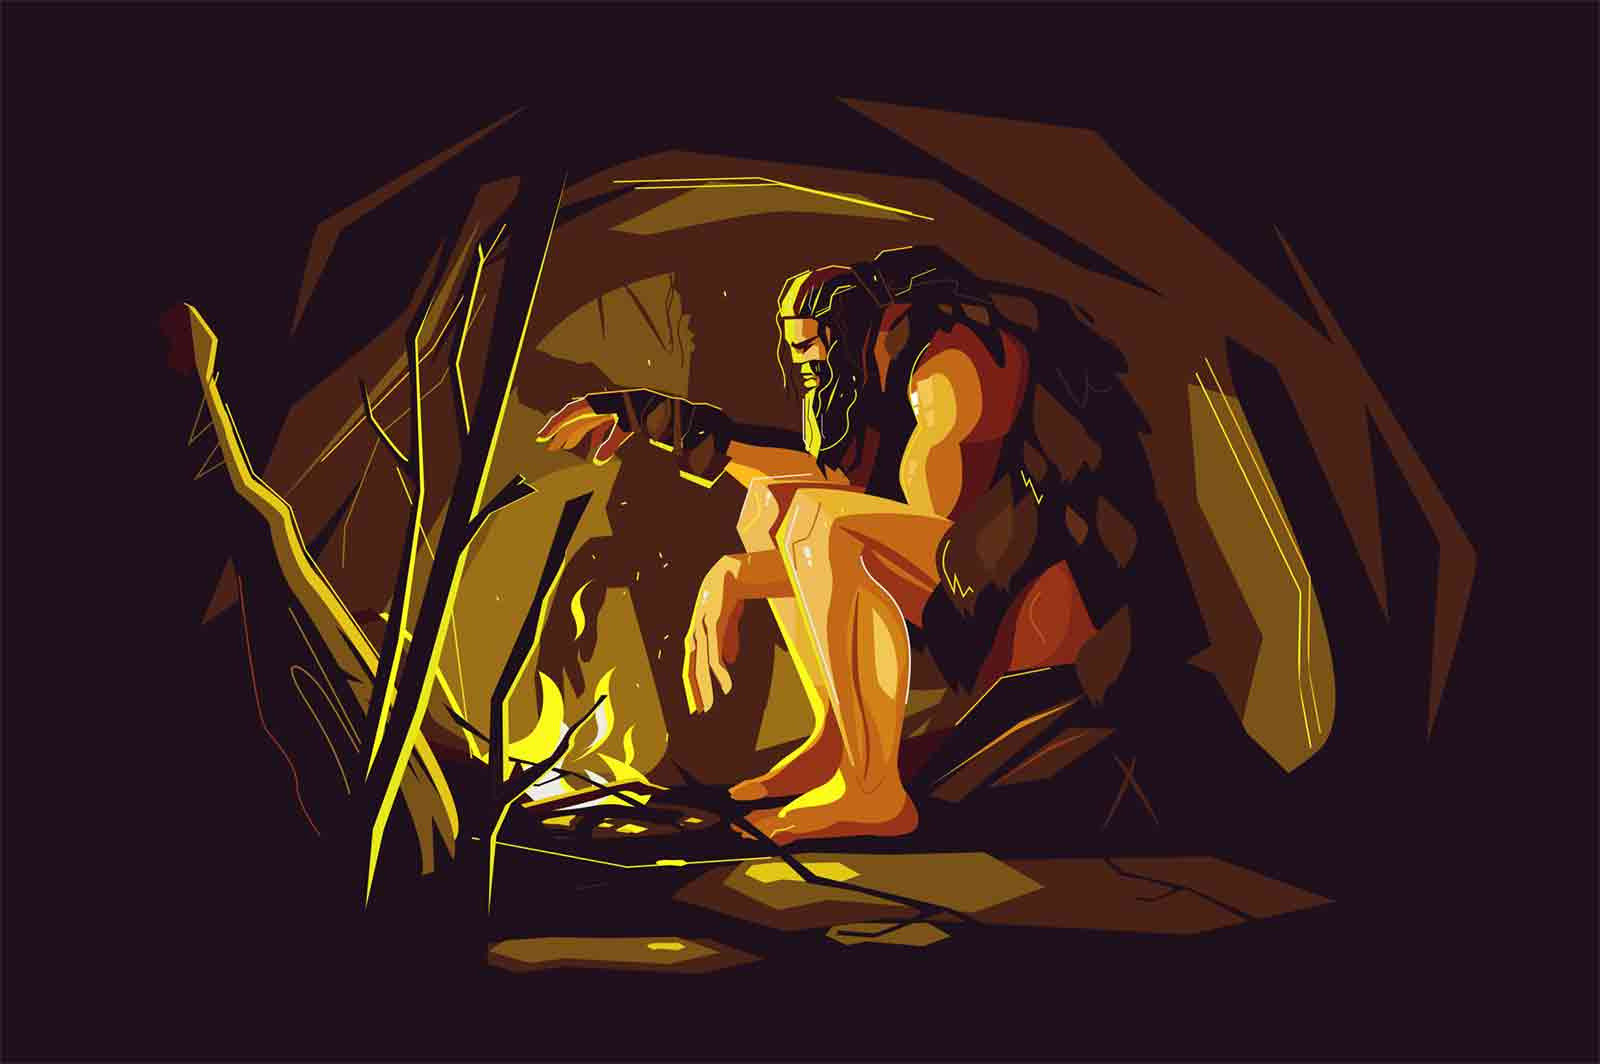 Wild caveman sitting near bonfire vector illustration. Tired and exhausted prehistoric boy relaxing near protective light flat style design. Ancient ages concept